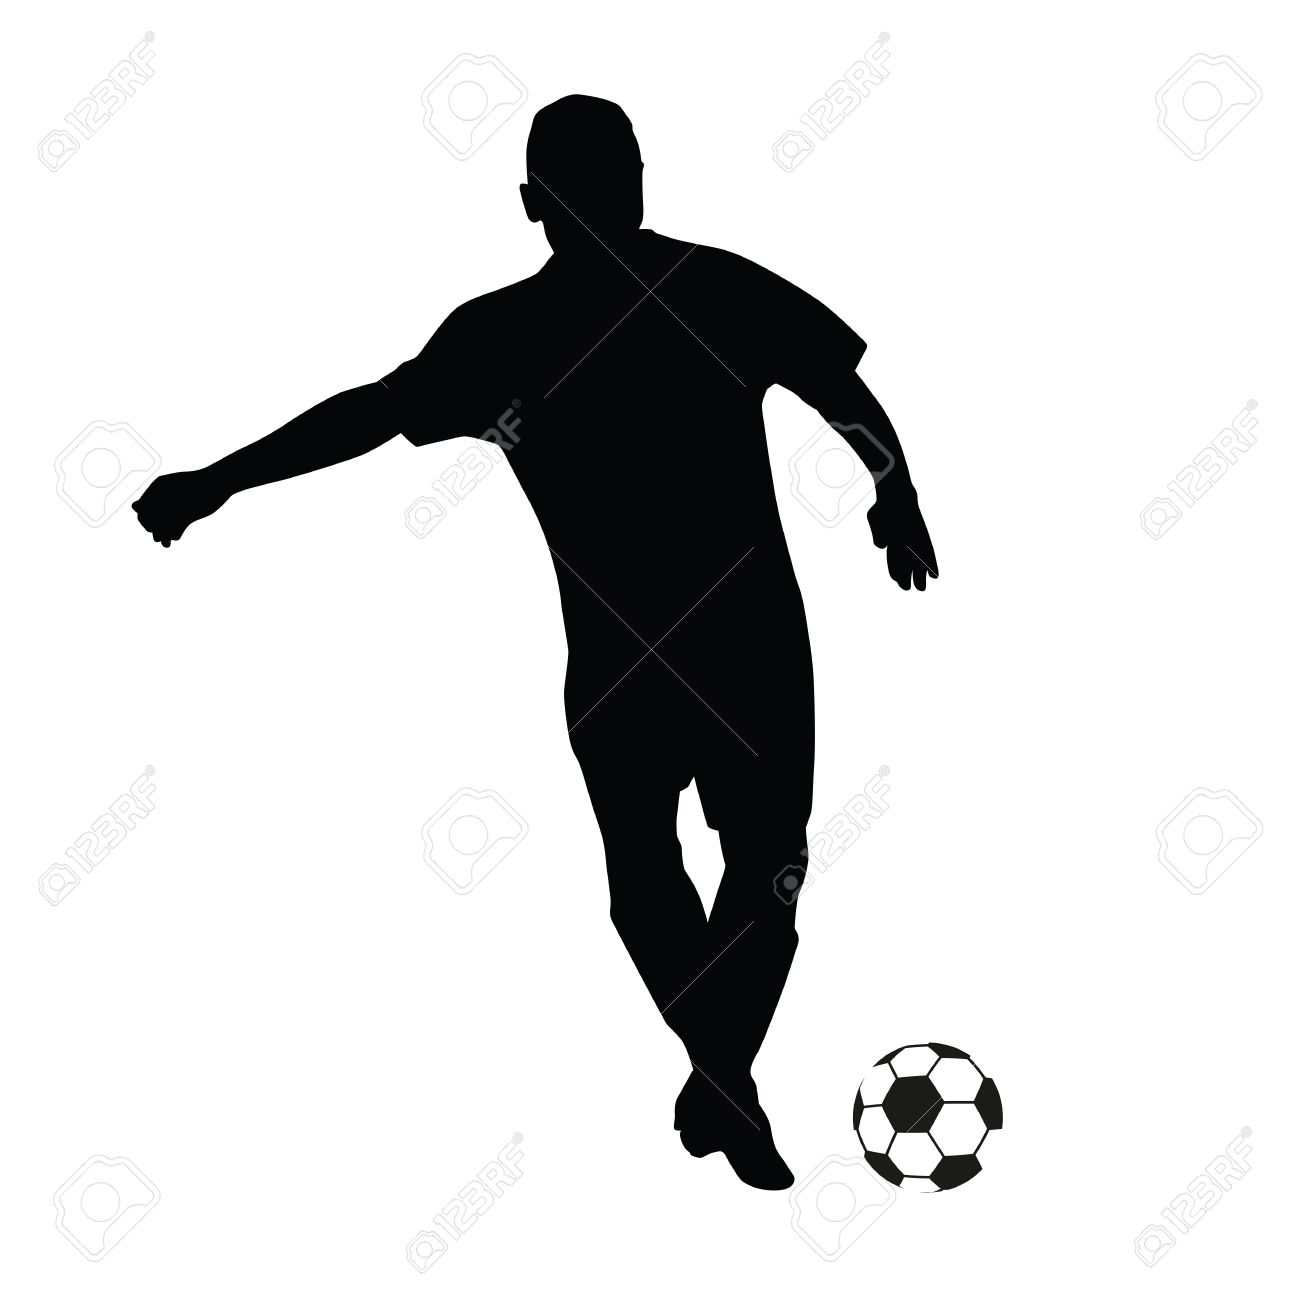 Soccer Player Vector Silhouette Running Football Player Royalty